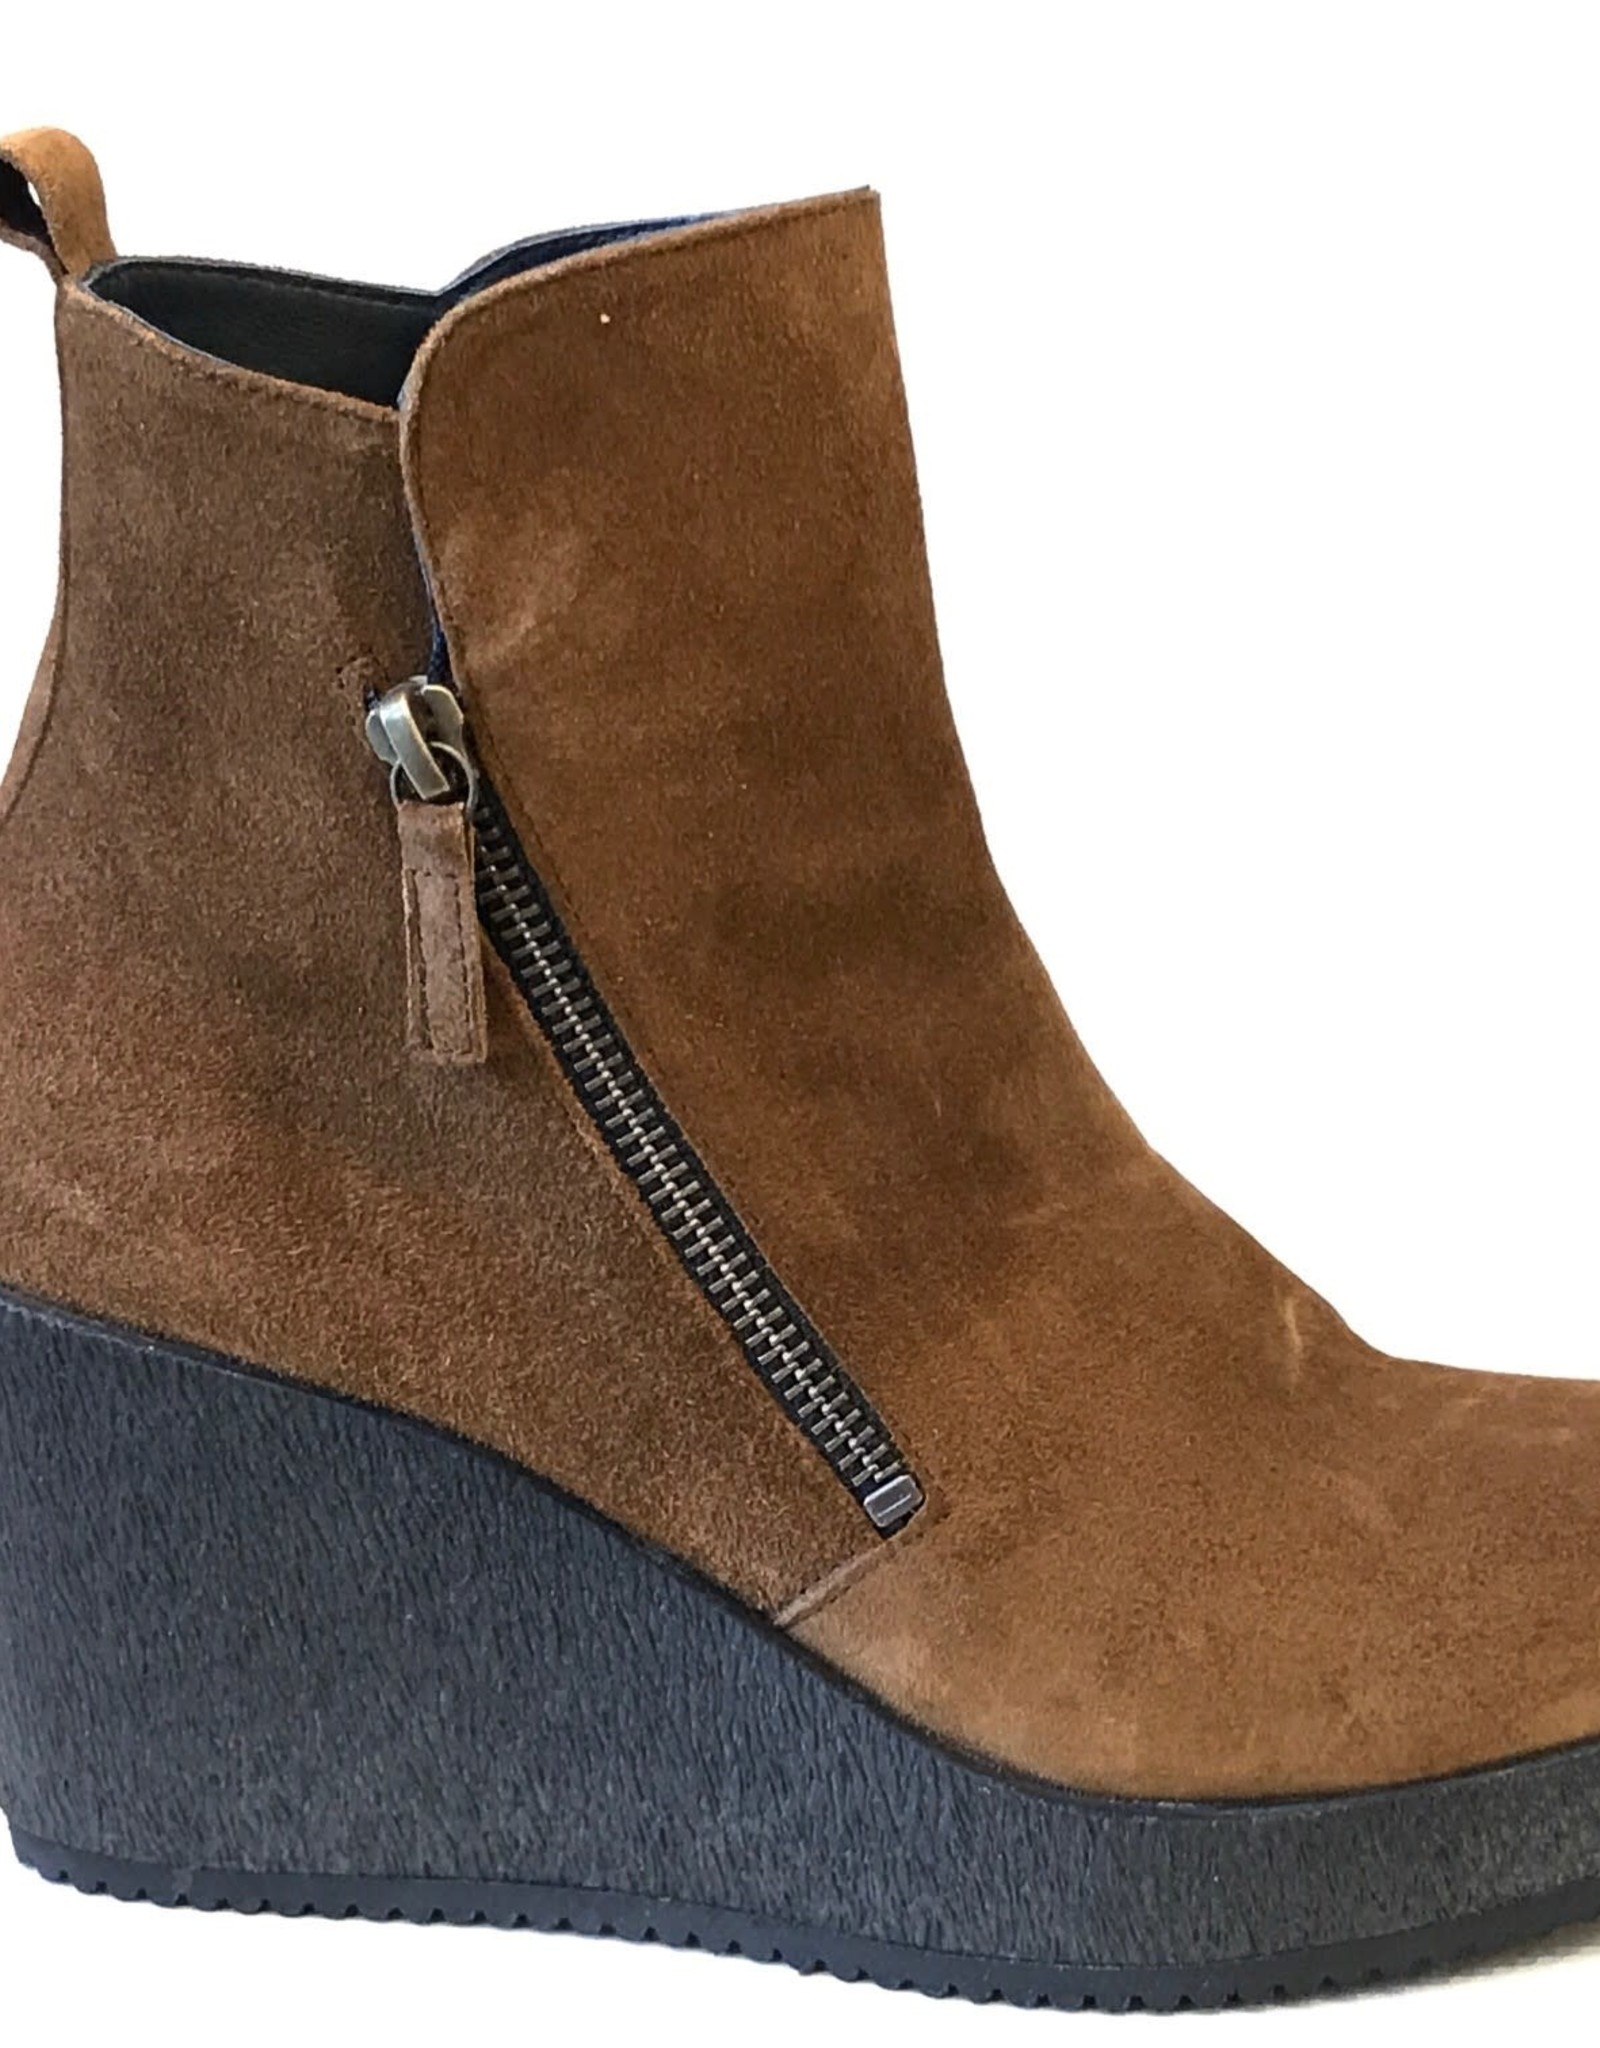 HOMERS - Micro Ankle Boot